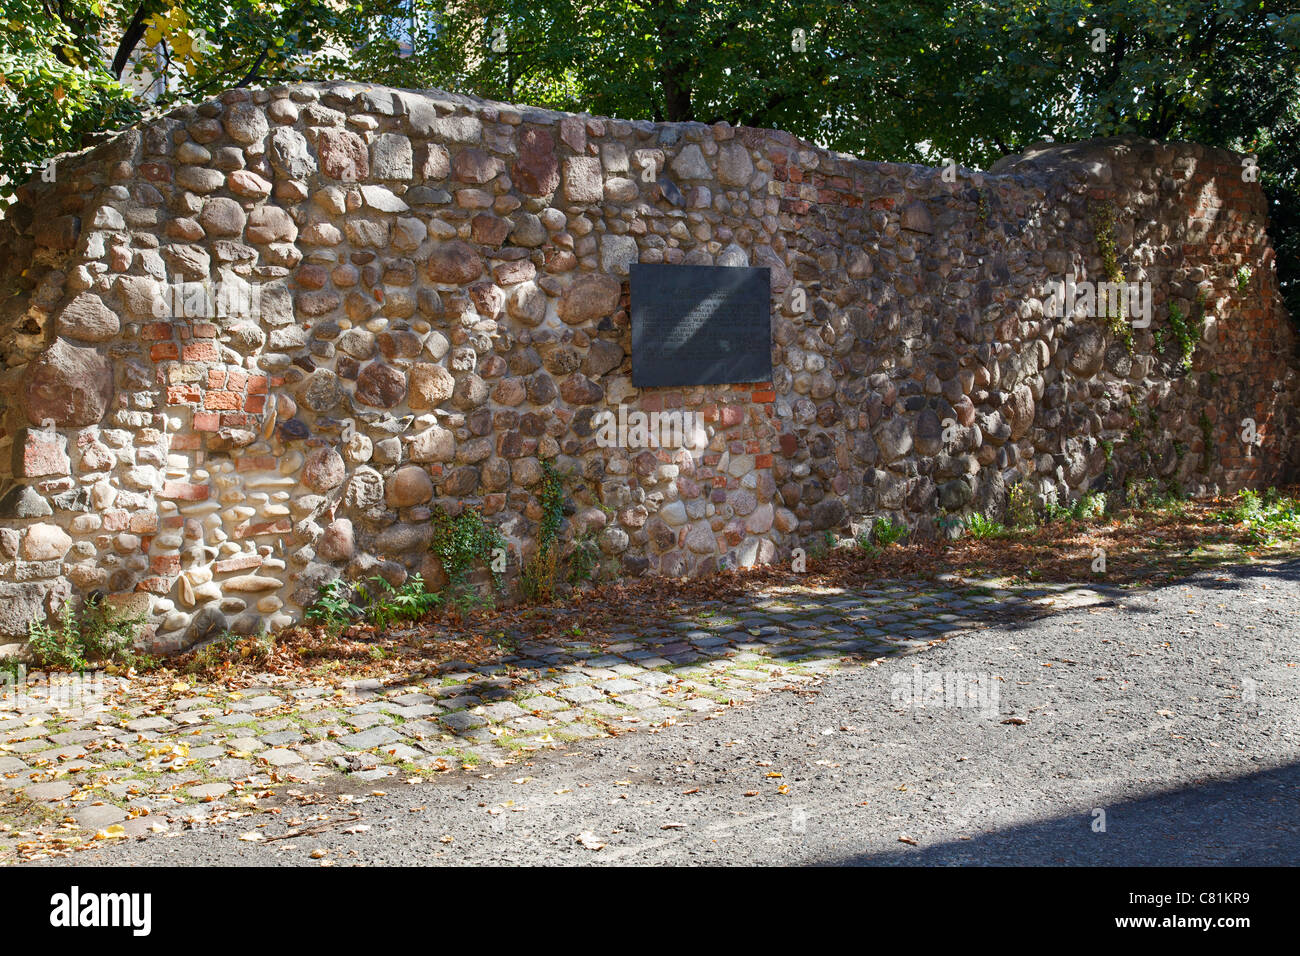 Remains of the city wall from the middle ages, Berlin, Germany - Stock Image